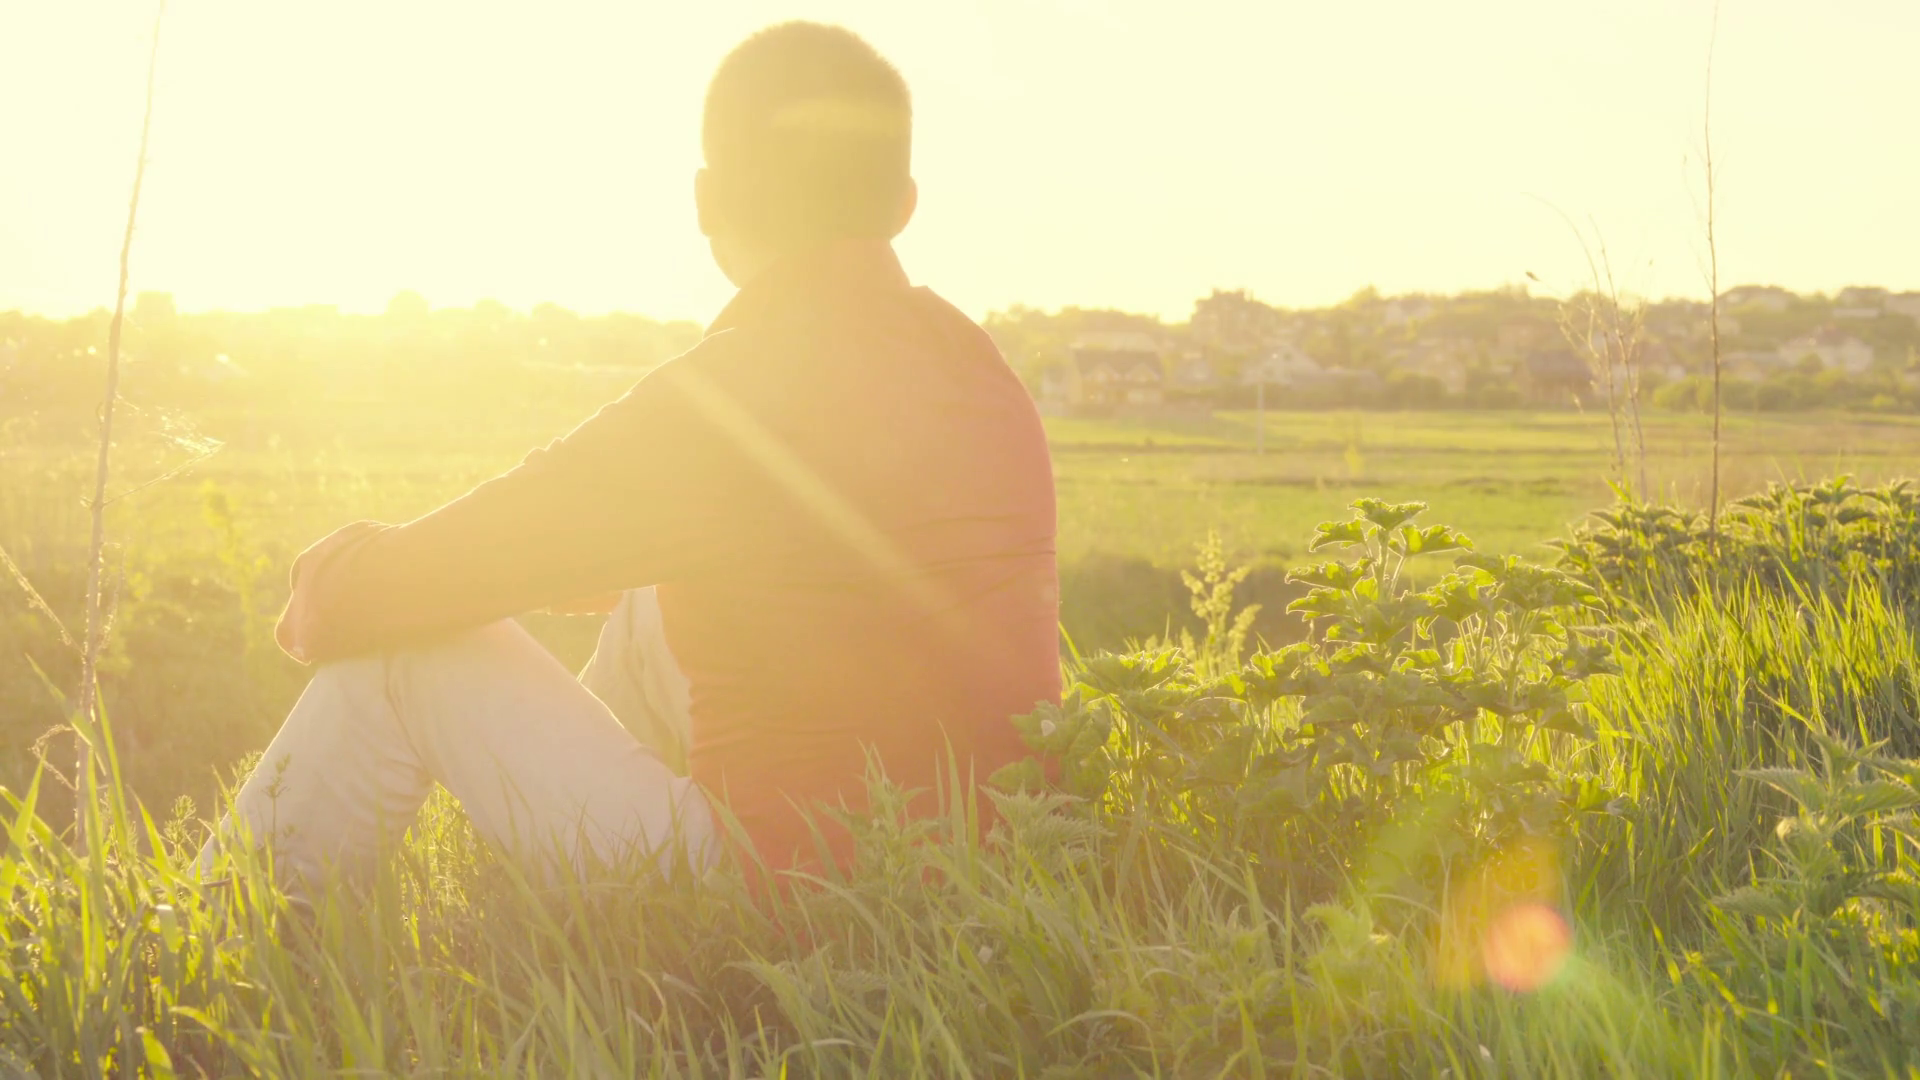 videoblocks-back-view-of-a-yang-man-sitting-on-a-green-meadow-at-sunset-blurred-background-backlight_hbnpr_j_thumbnail-full01